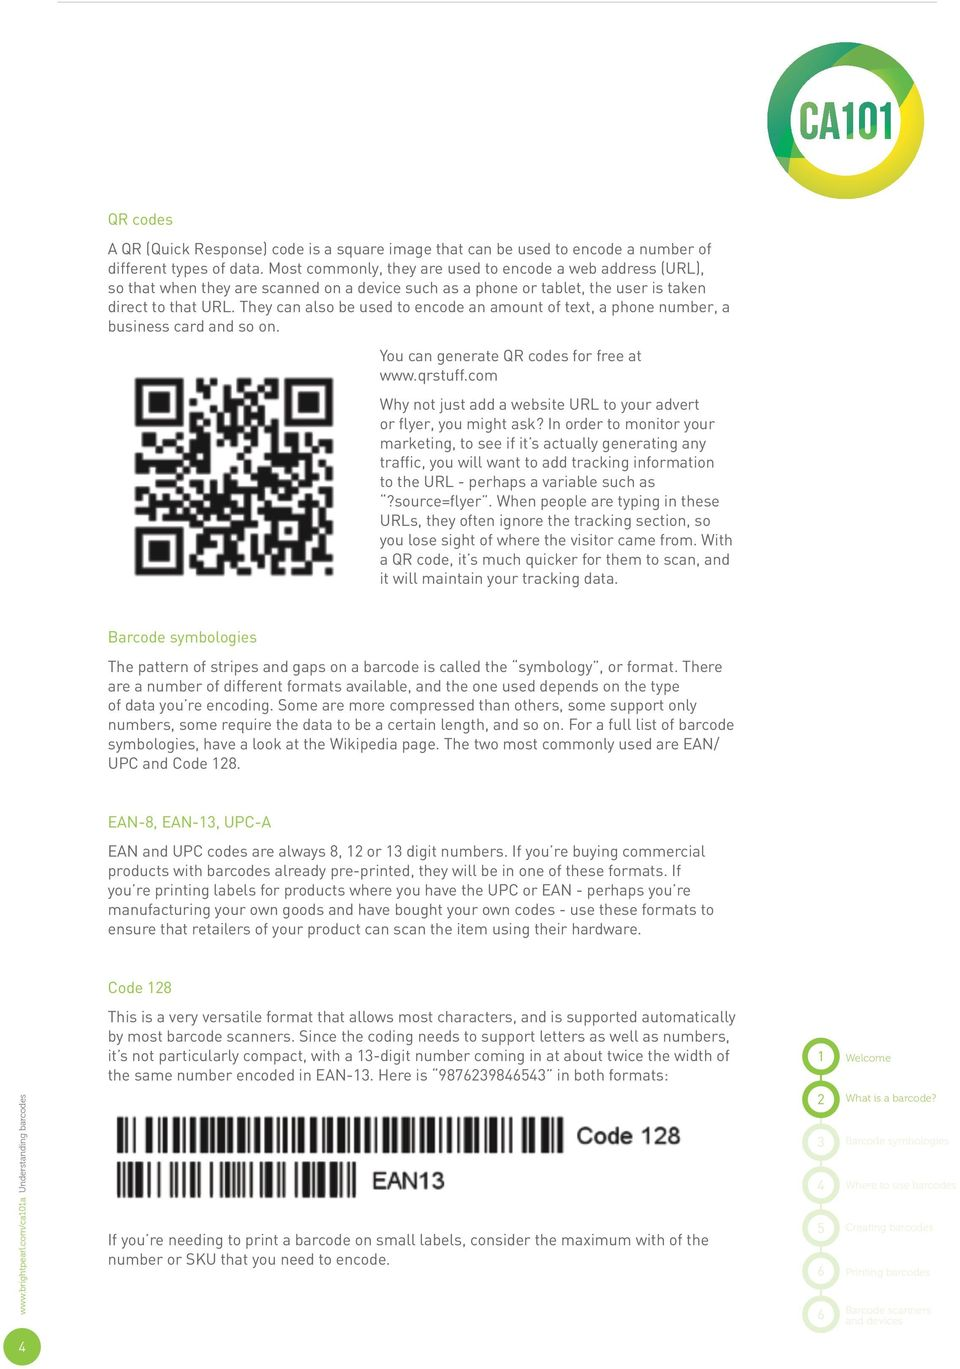 They can also be used to encode an amount of text, a phone number, a business card and so on. You can generate QR codes for free at www.qrstuff.